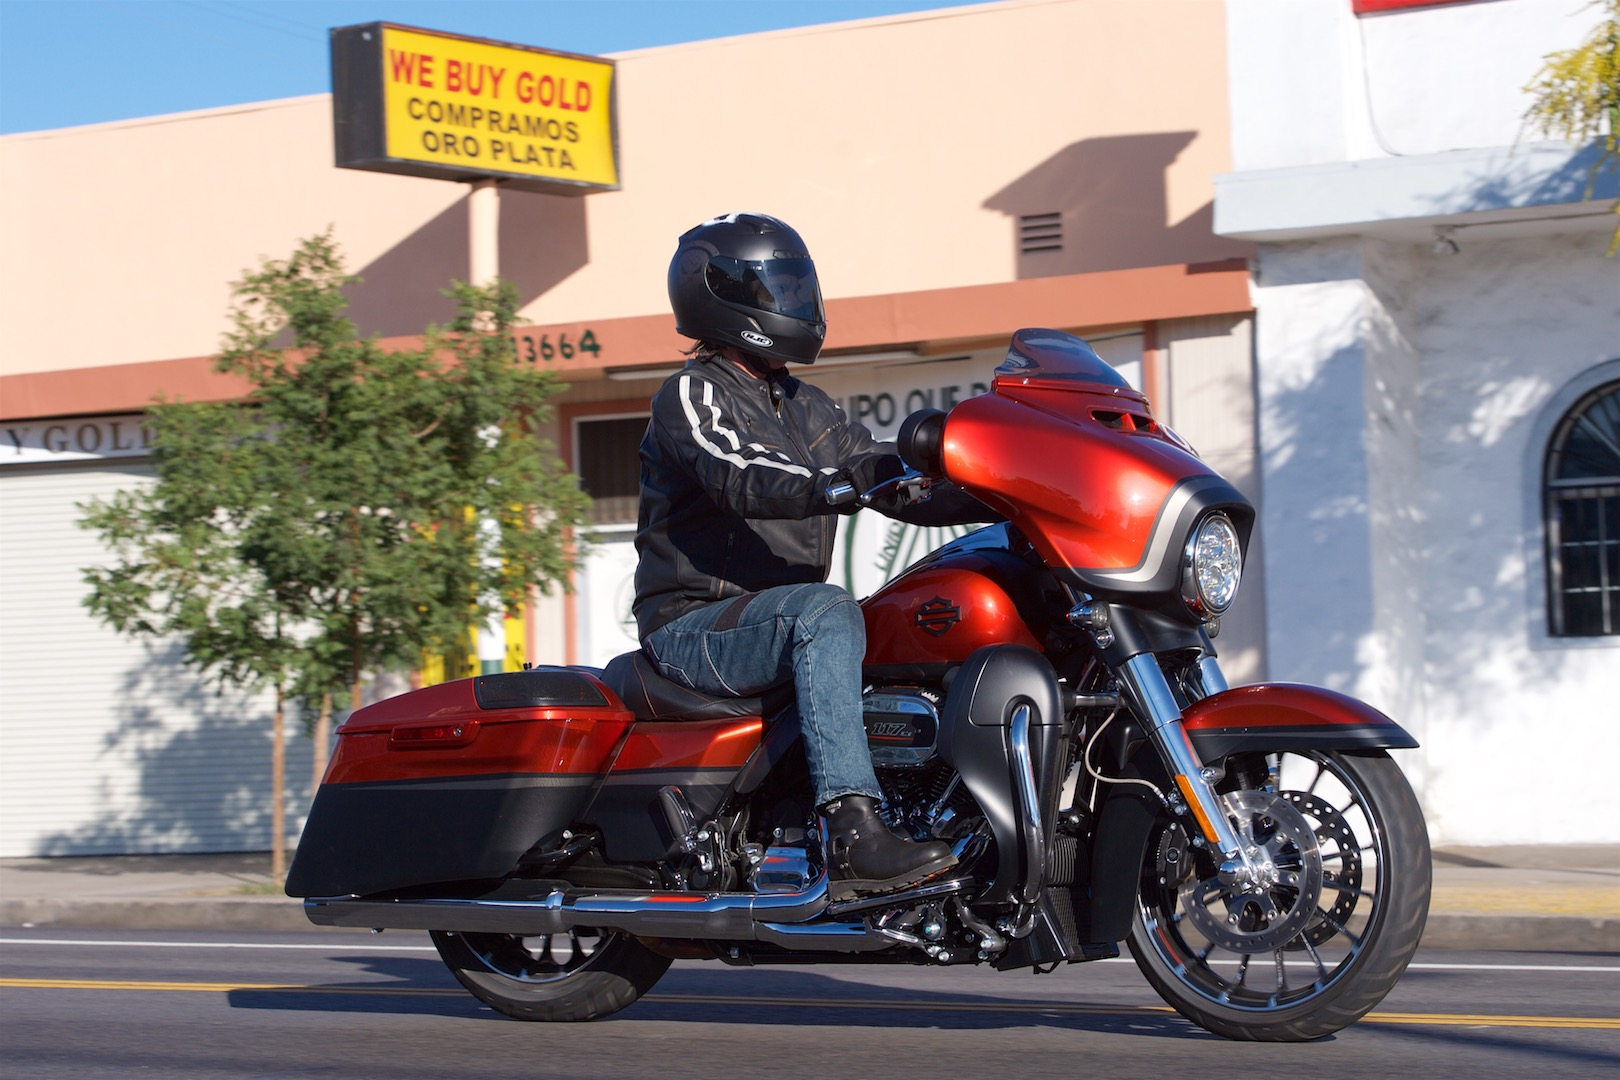 2018 Harley-Davidson CVO Street Glide Review | 12 Fast Facts